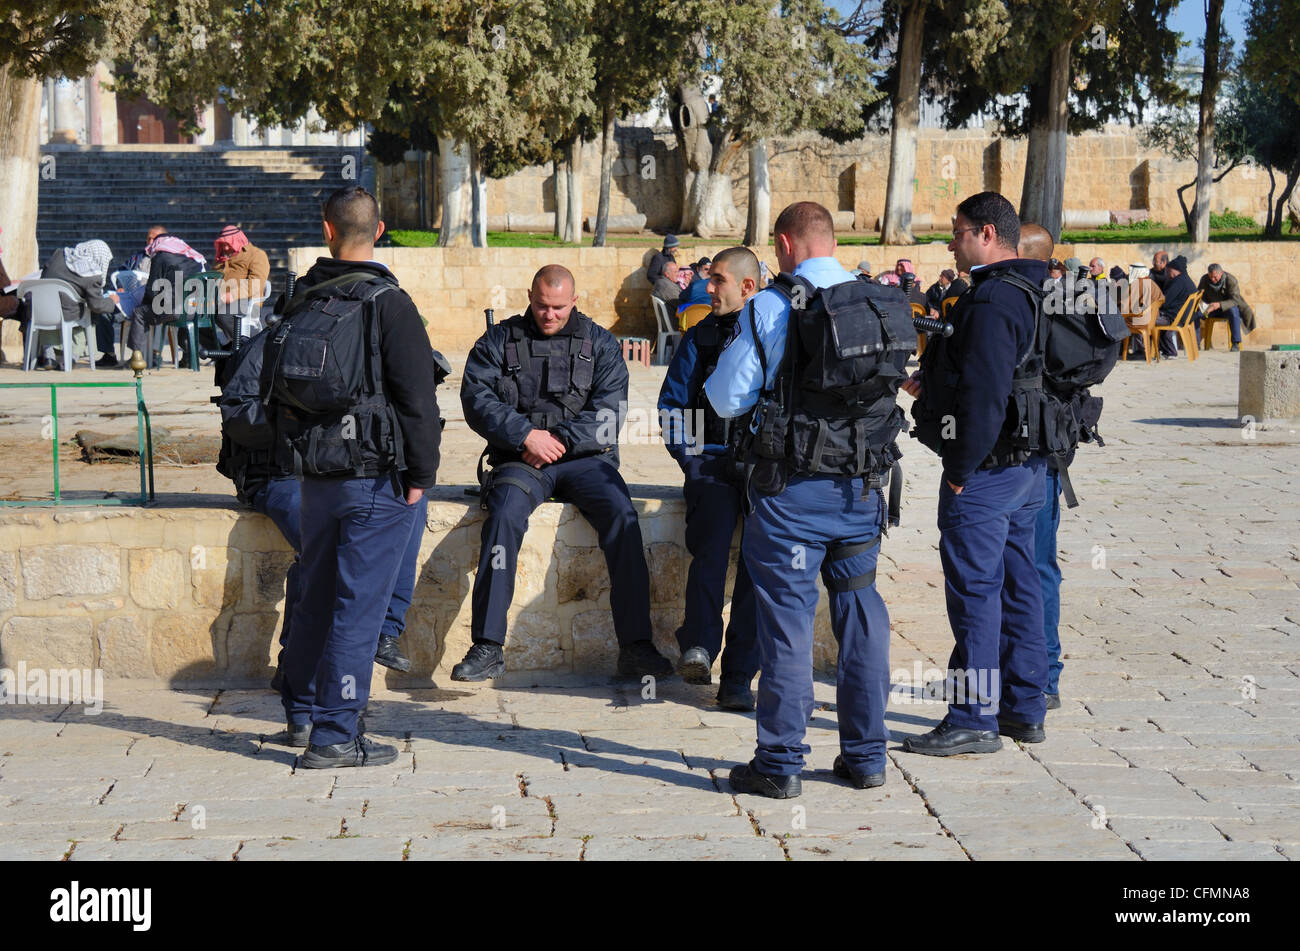 Israeli Border Police chat on the Temple Mount in the Old City of Jerusalem, Israel. - Stock Image